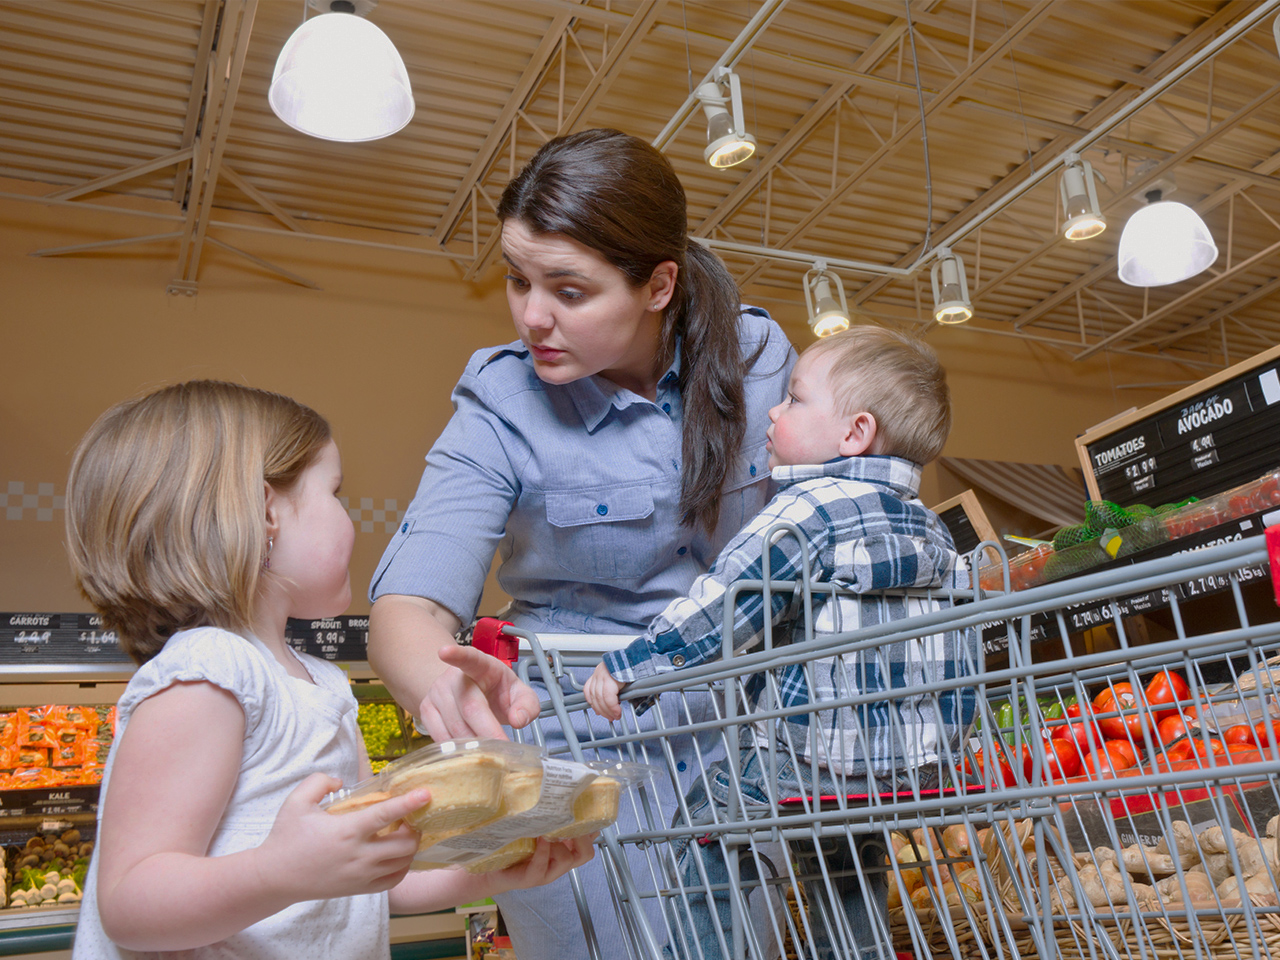 mom saying no to her daughter holding packaged cakes at the grocery store while toddler sits in cart